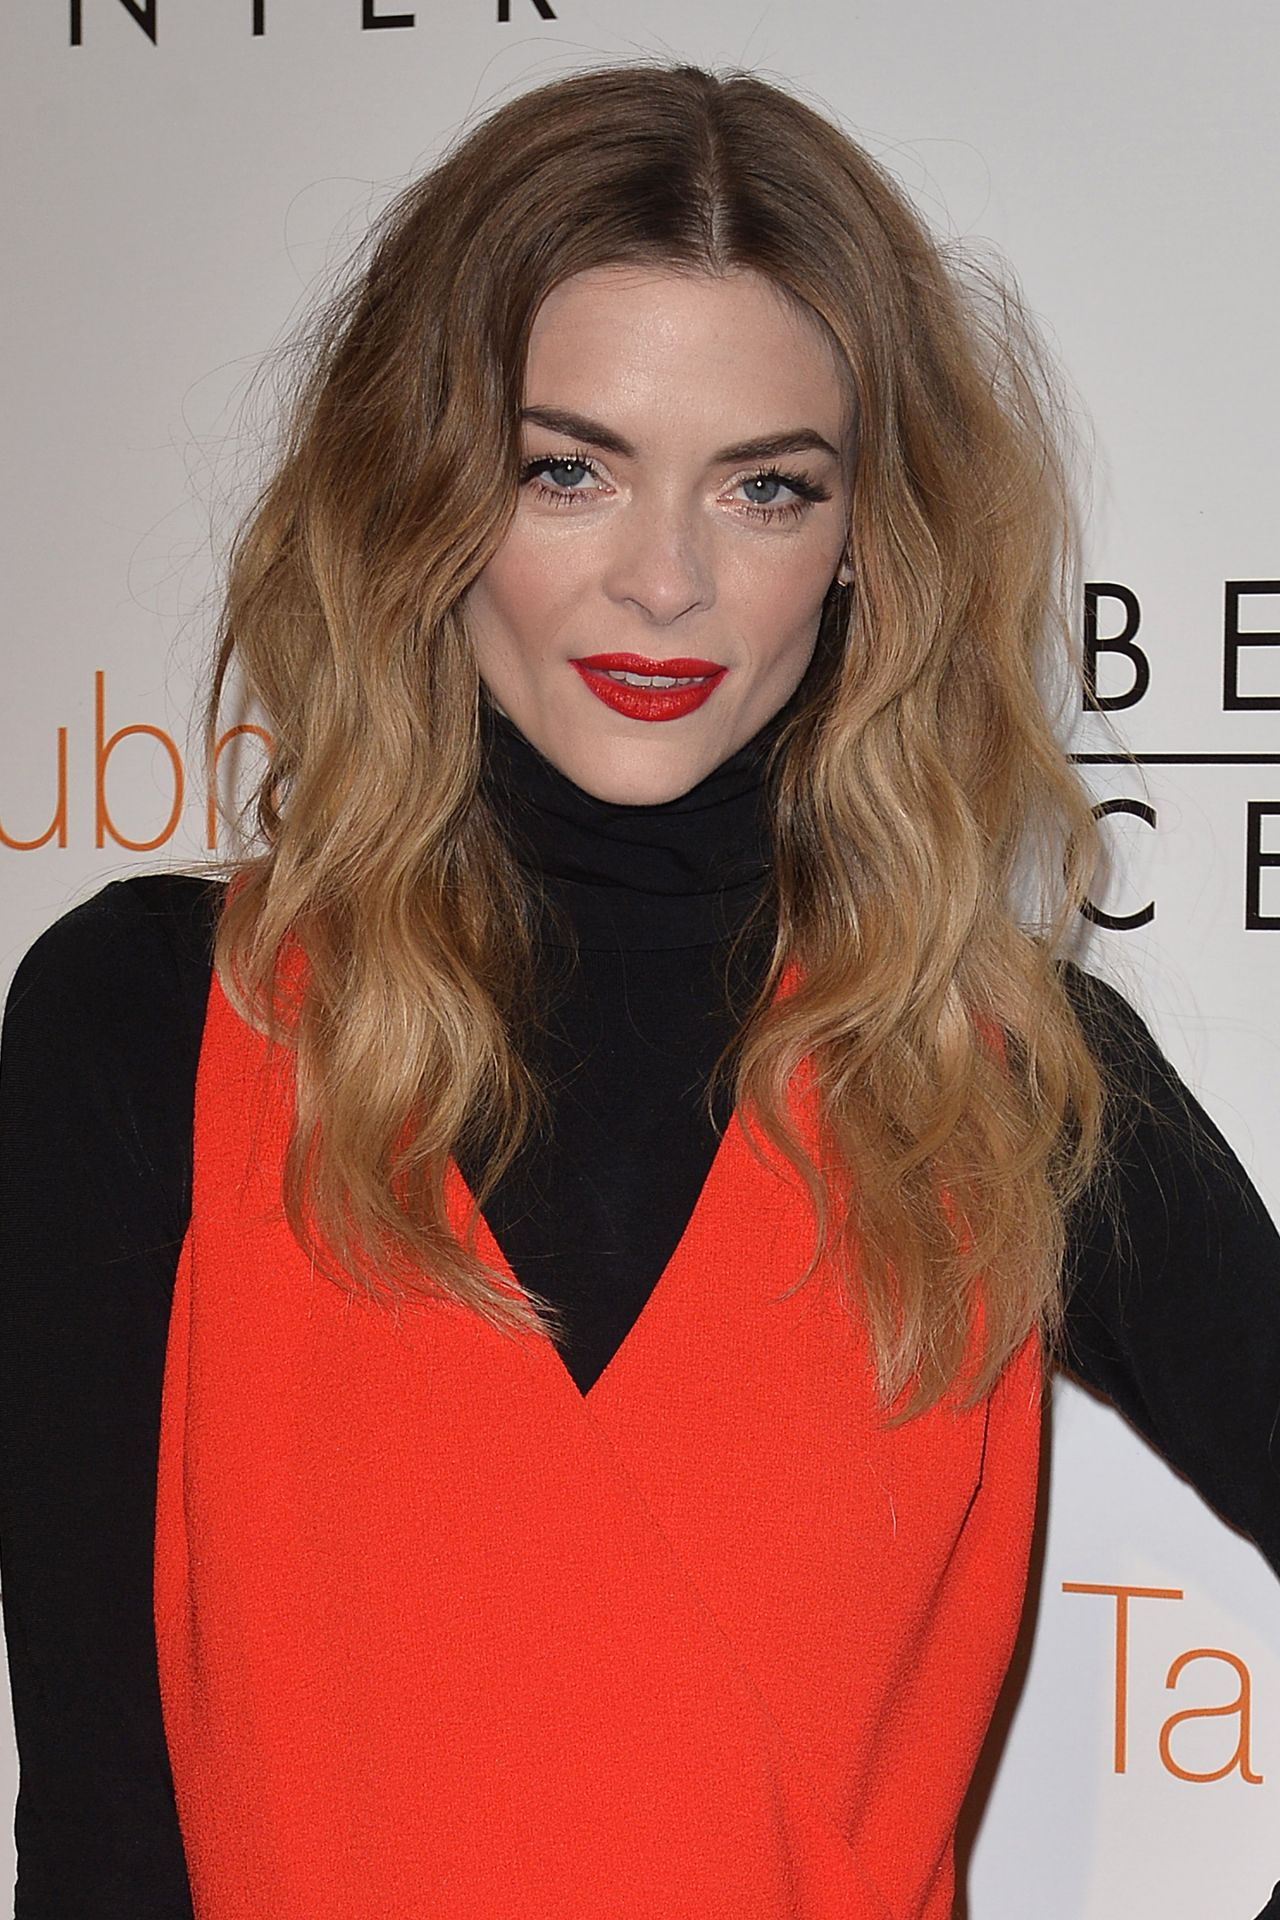 King an icon reimagined open ceremony in los angeles march 2016 jaime king an icon reimagined open ceremony in los angeles march 2016 sciox Choice Image